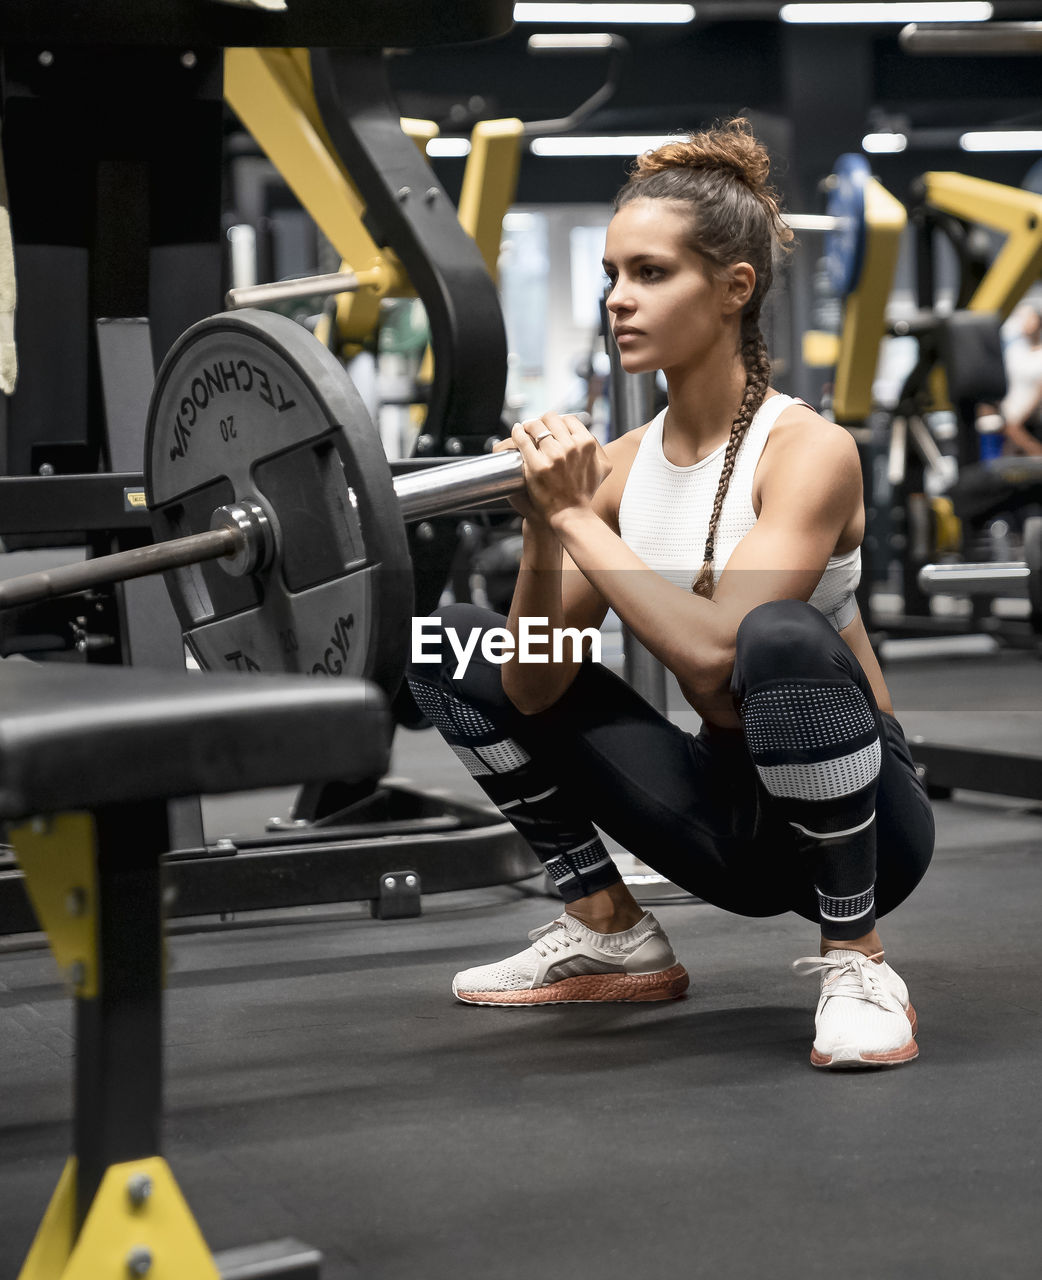 gym, exercising, strength, sports training, sport, healthy lifestyle, muscular build, weight, health club, weight training, exercise equipment, one person, indoors, full length, body conscious, sports clothing, real people, weights, wellbeing, young adult, equipment, dumbbell, effort, exercise machine, self improvement, physical activity